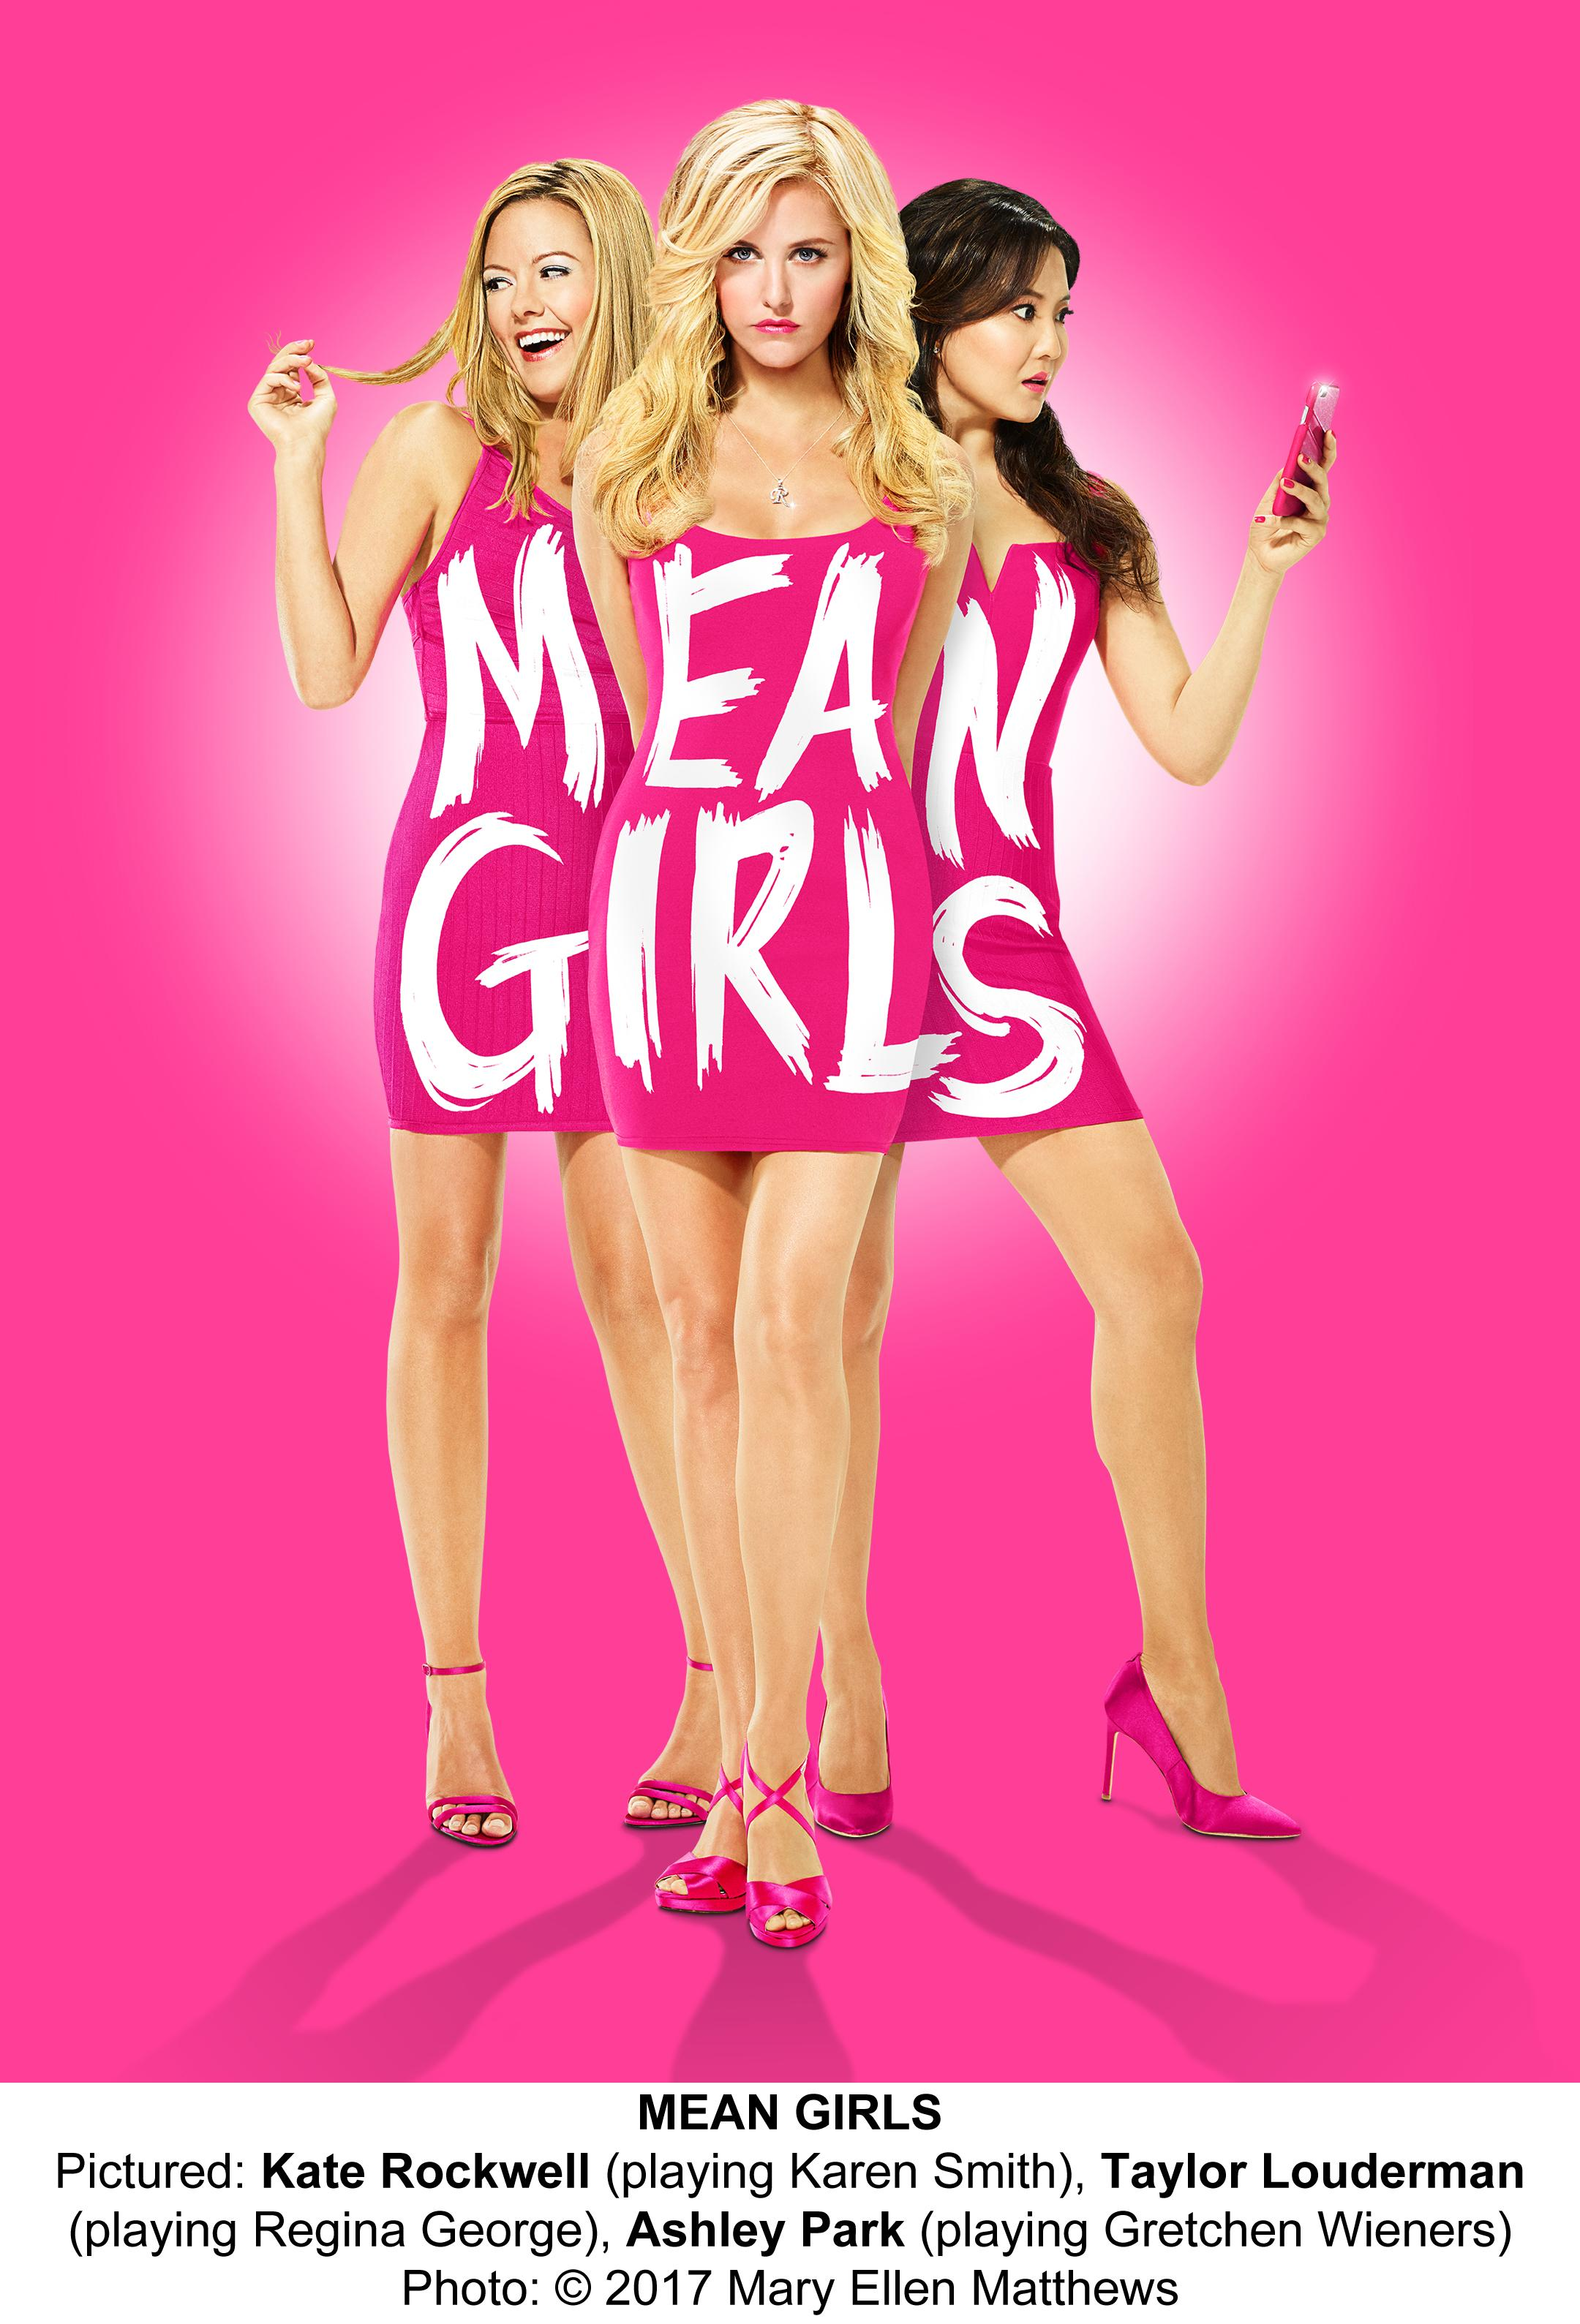 Pictured: Kate Rockwell as Karen Smith, Taylor Louderman as Regina George and Ashley Park as Gretchen Wieners (Image: Mary Ellen Matthews)